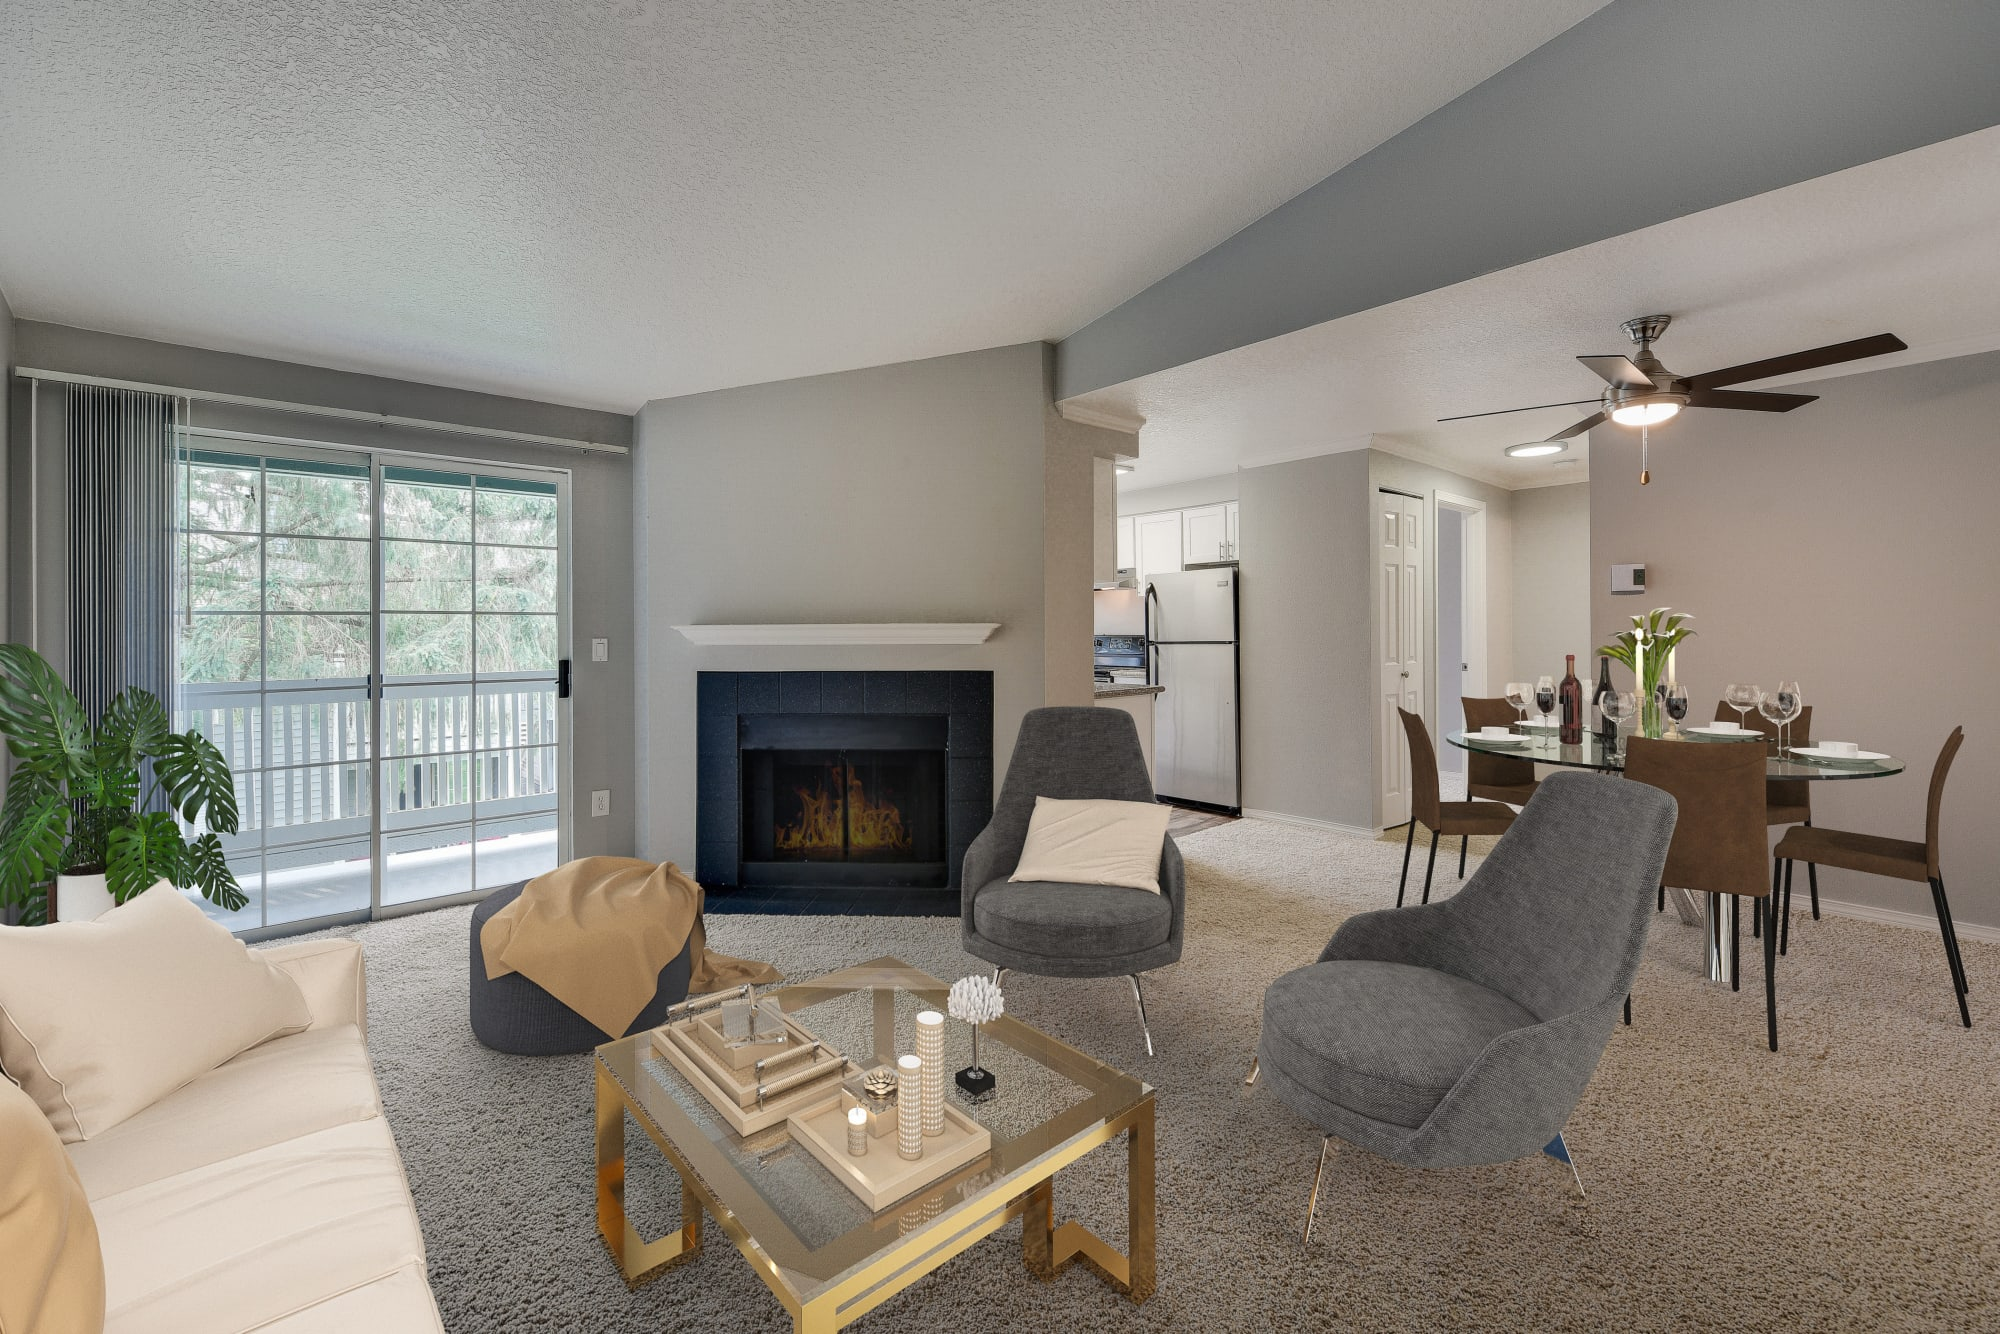 Spacious living room complete with a fireplace at Walnut Grove Landing Apartments in Vancouver, Washington